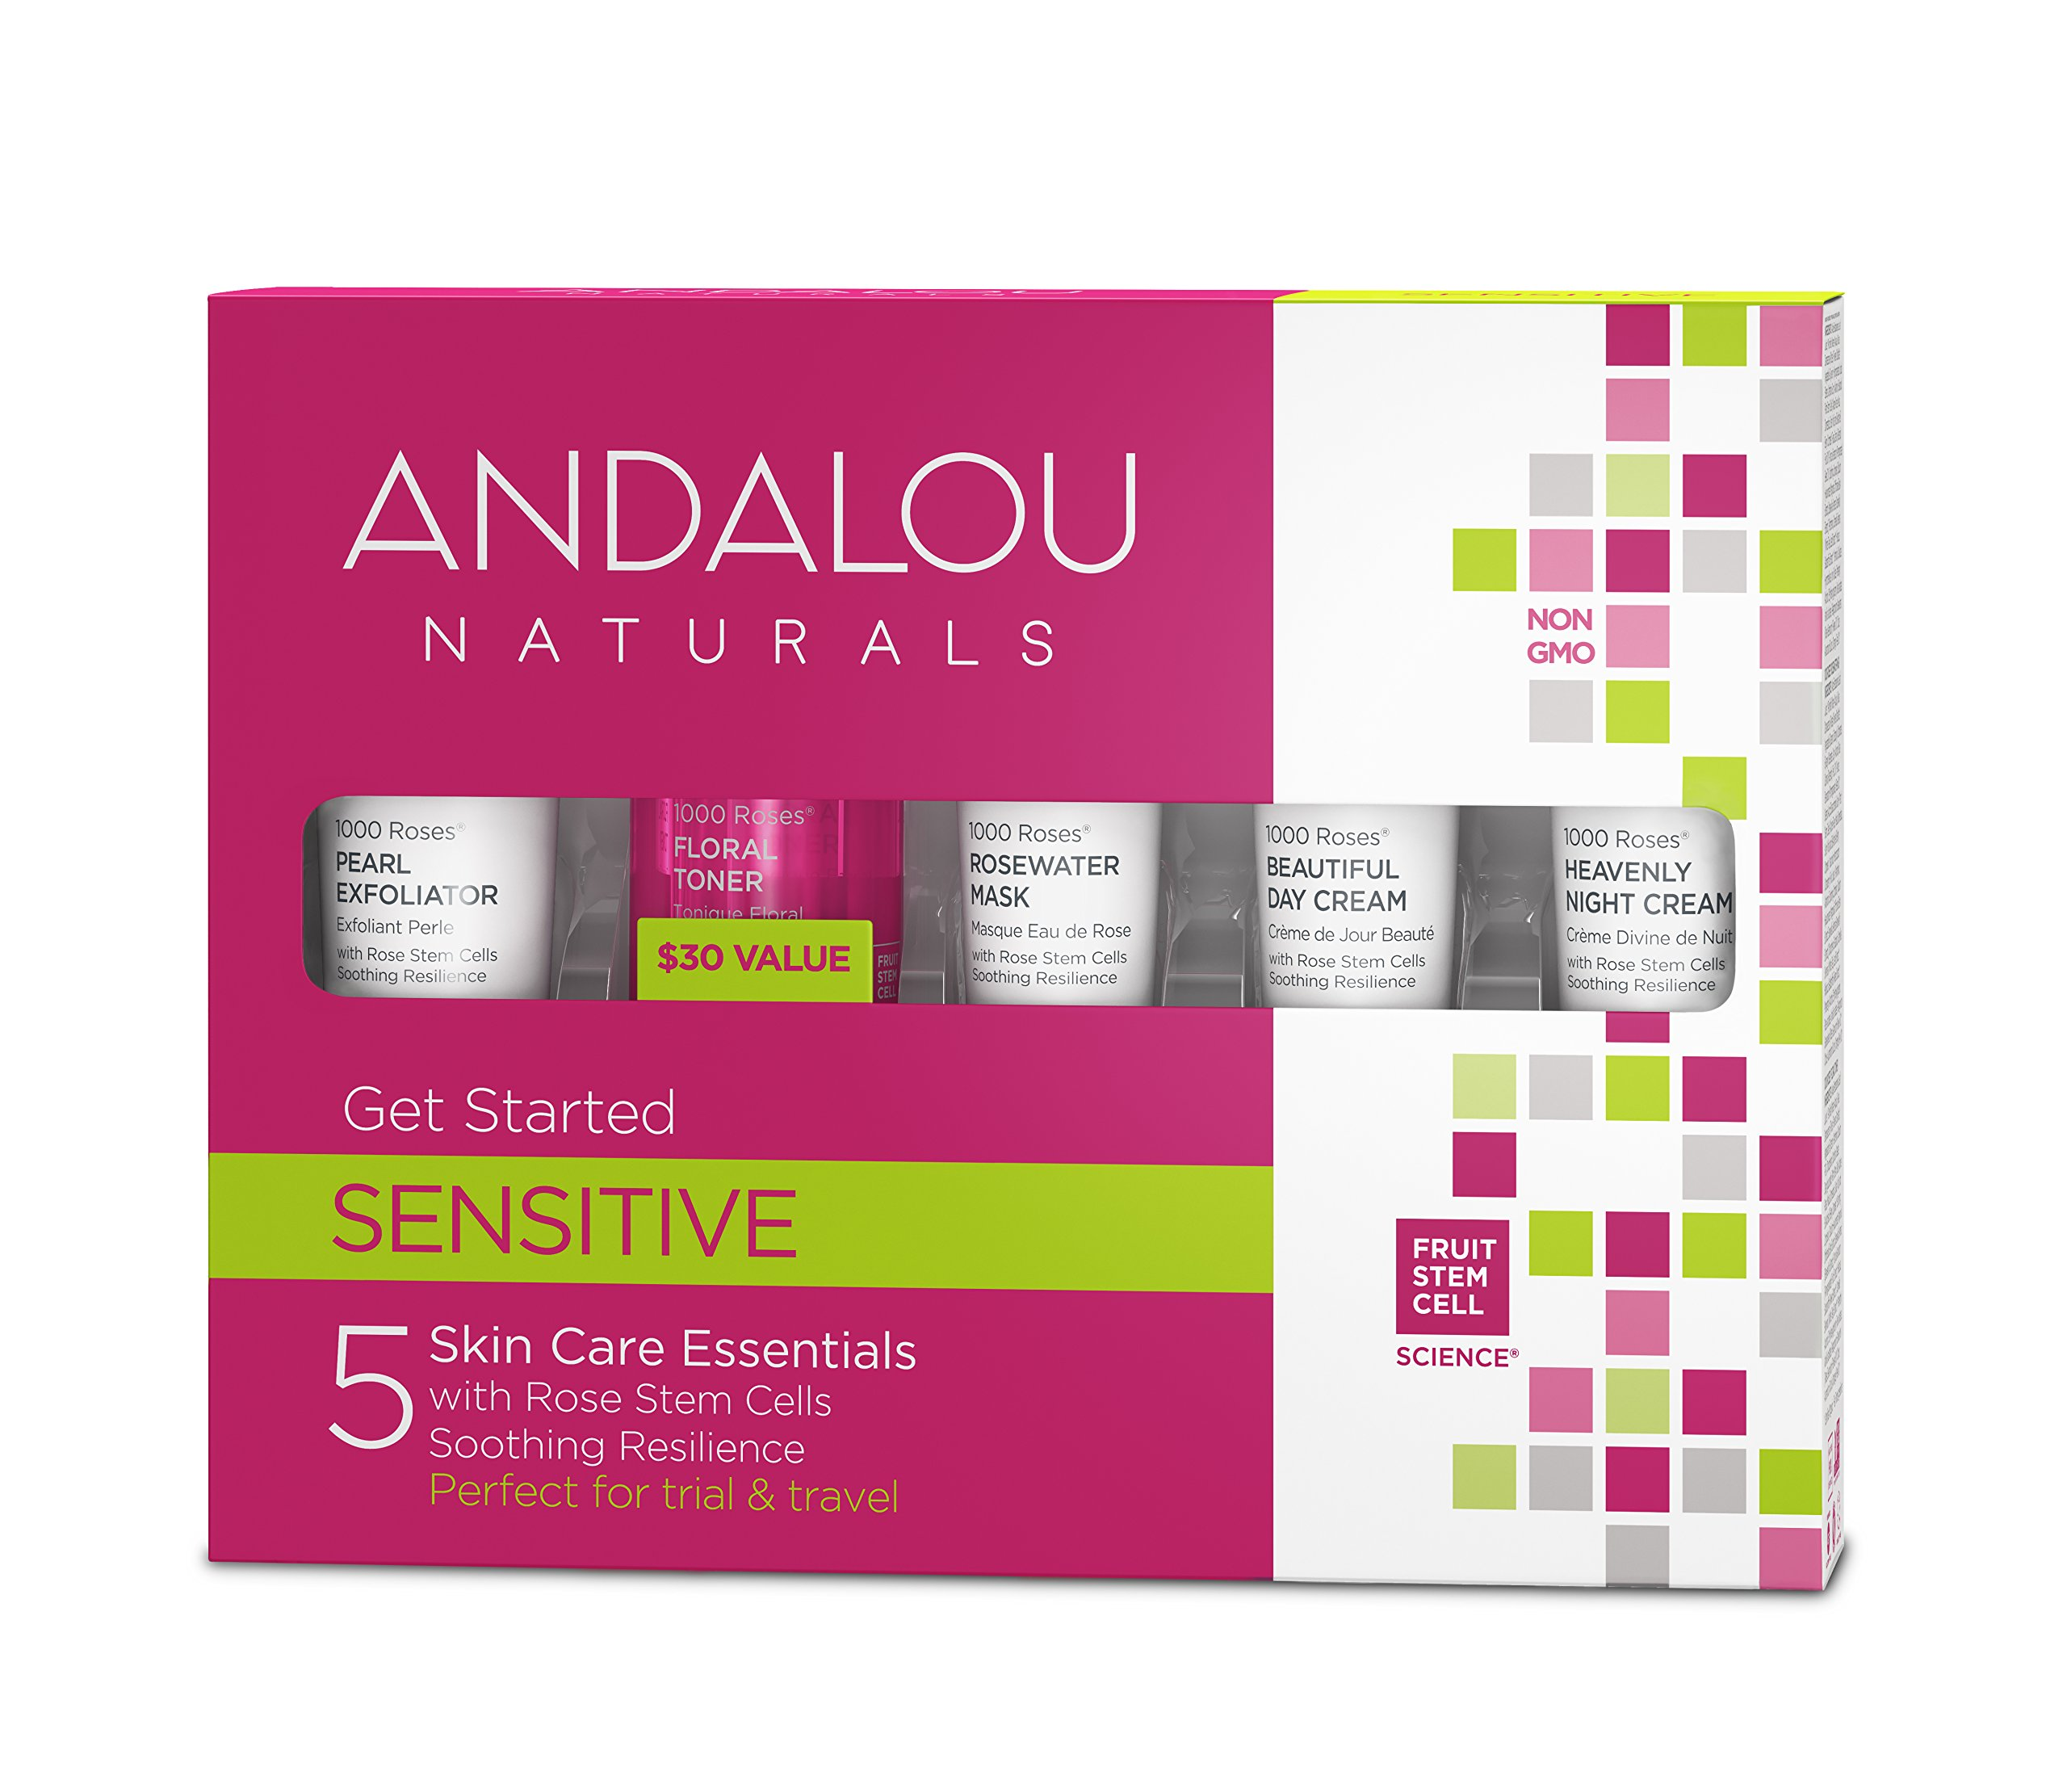 Andalou Naturals 1000 Roses 5 Piece Get Started Kit